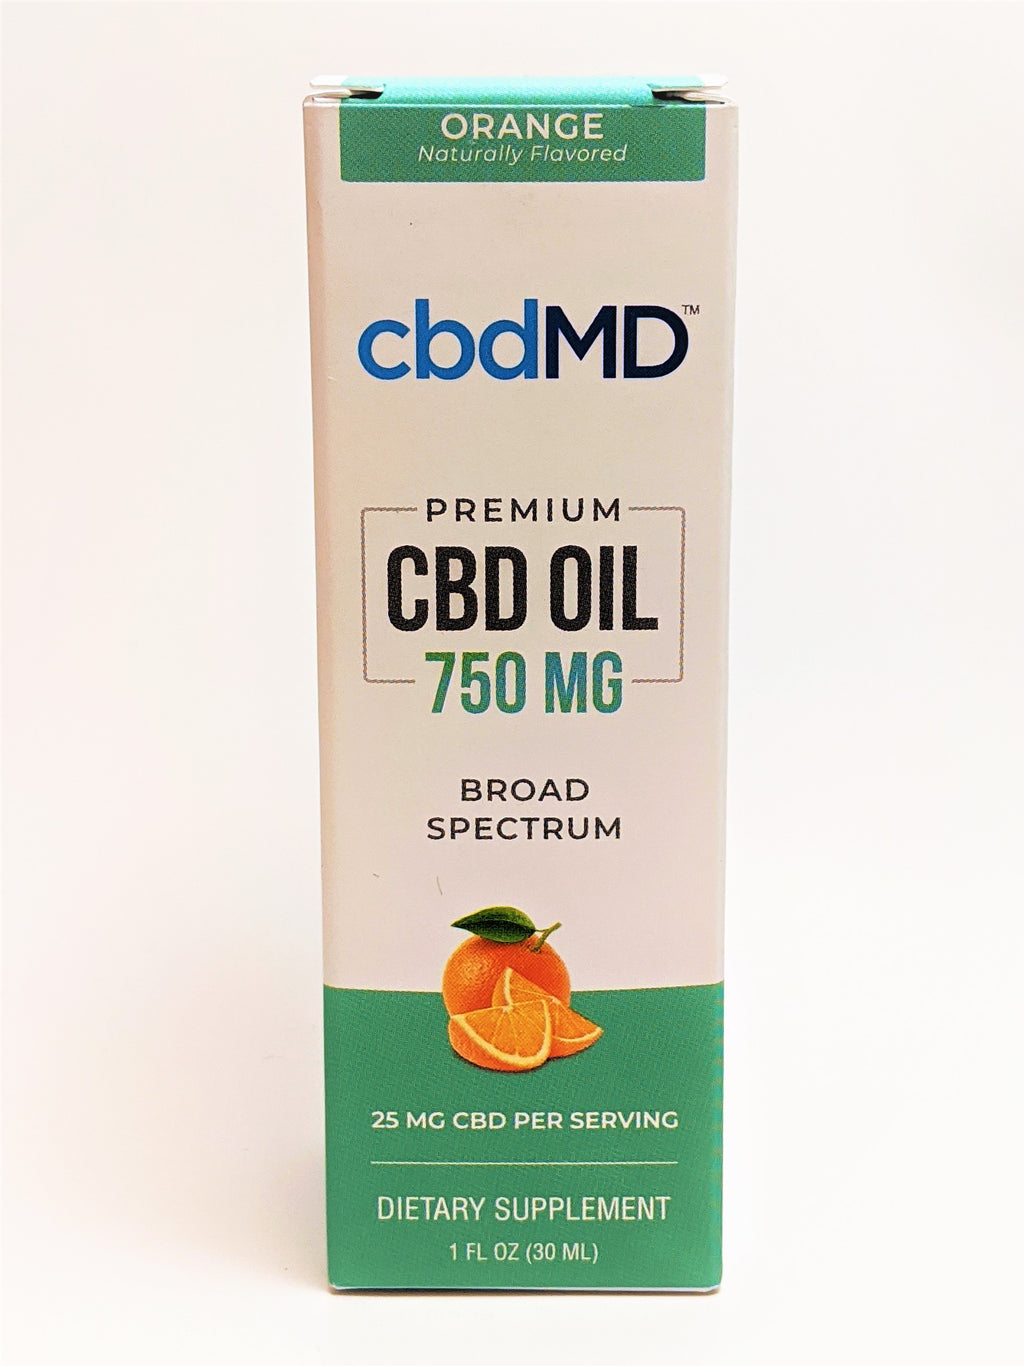 cbdMD 750 mg Oil - Orange Flavor - CBD Central